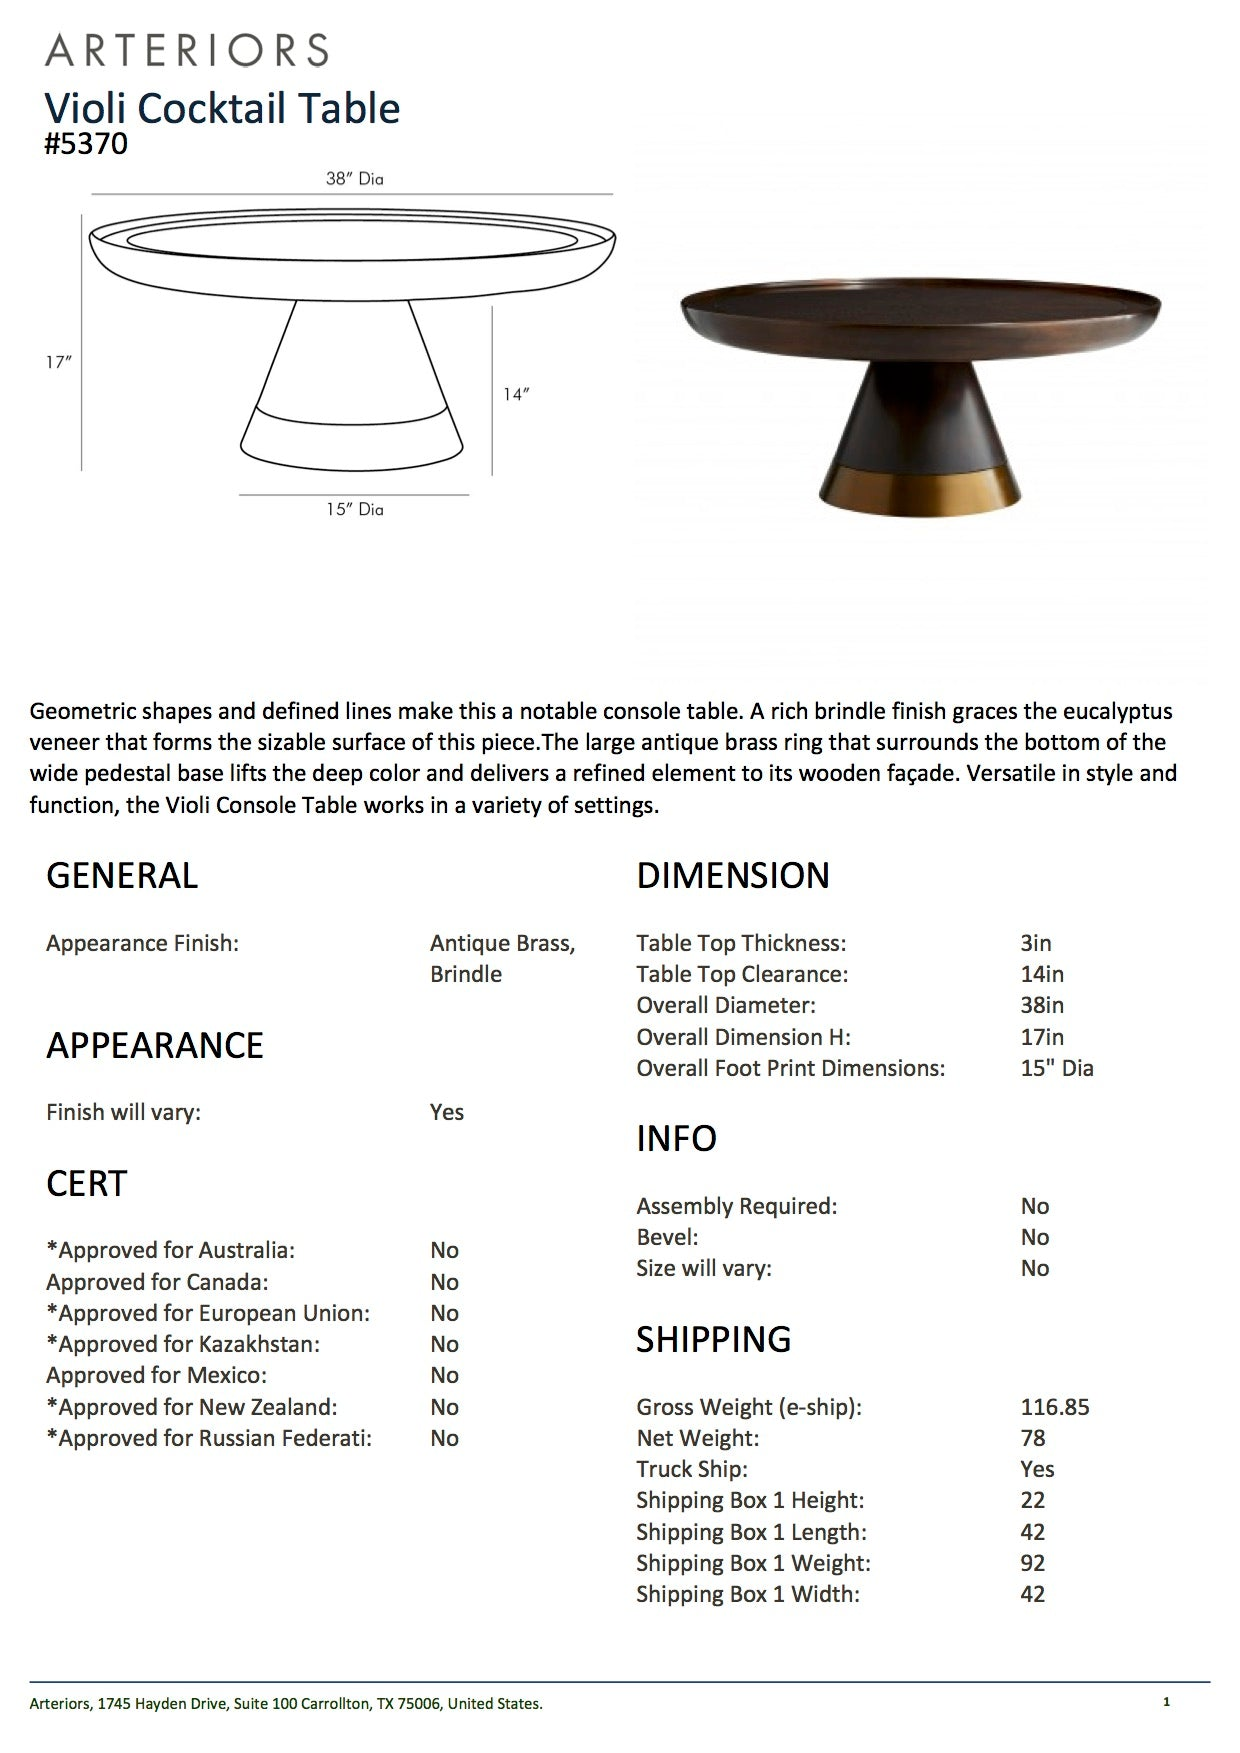 arteriors home violi cocktail table tearsheet